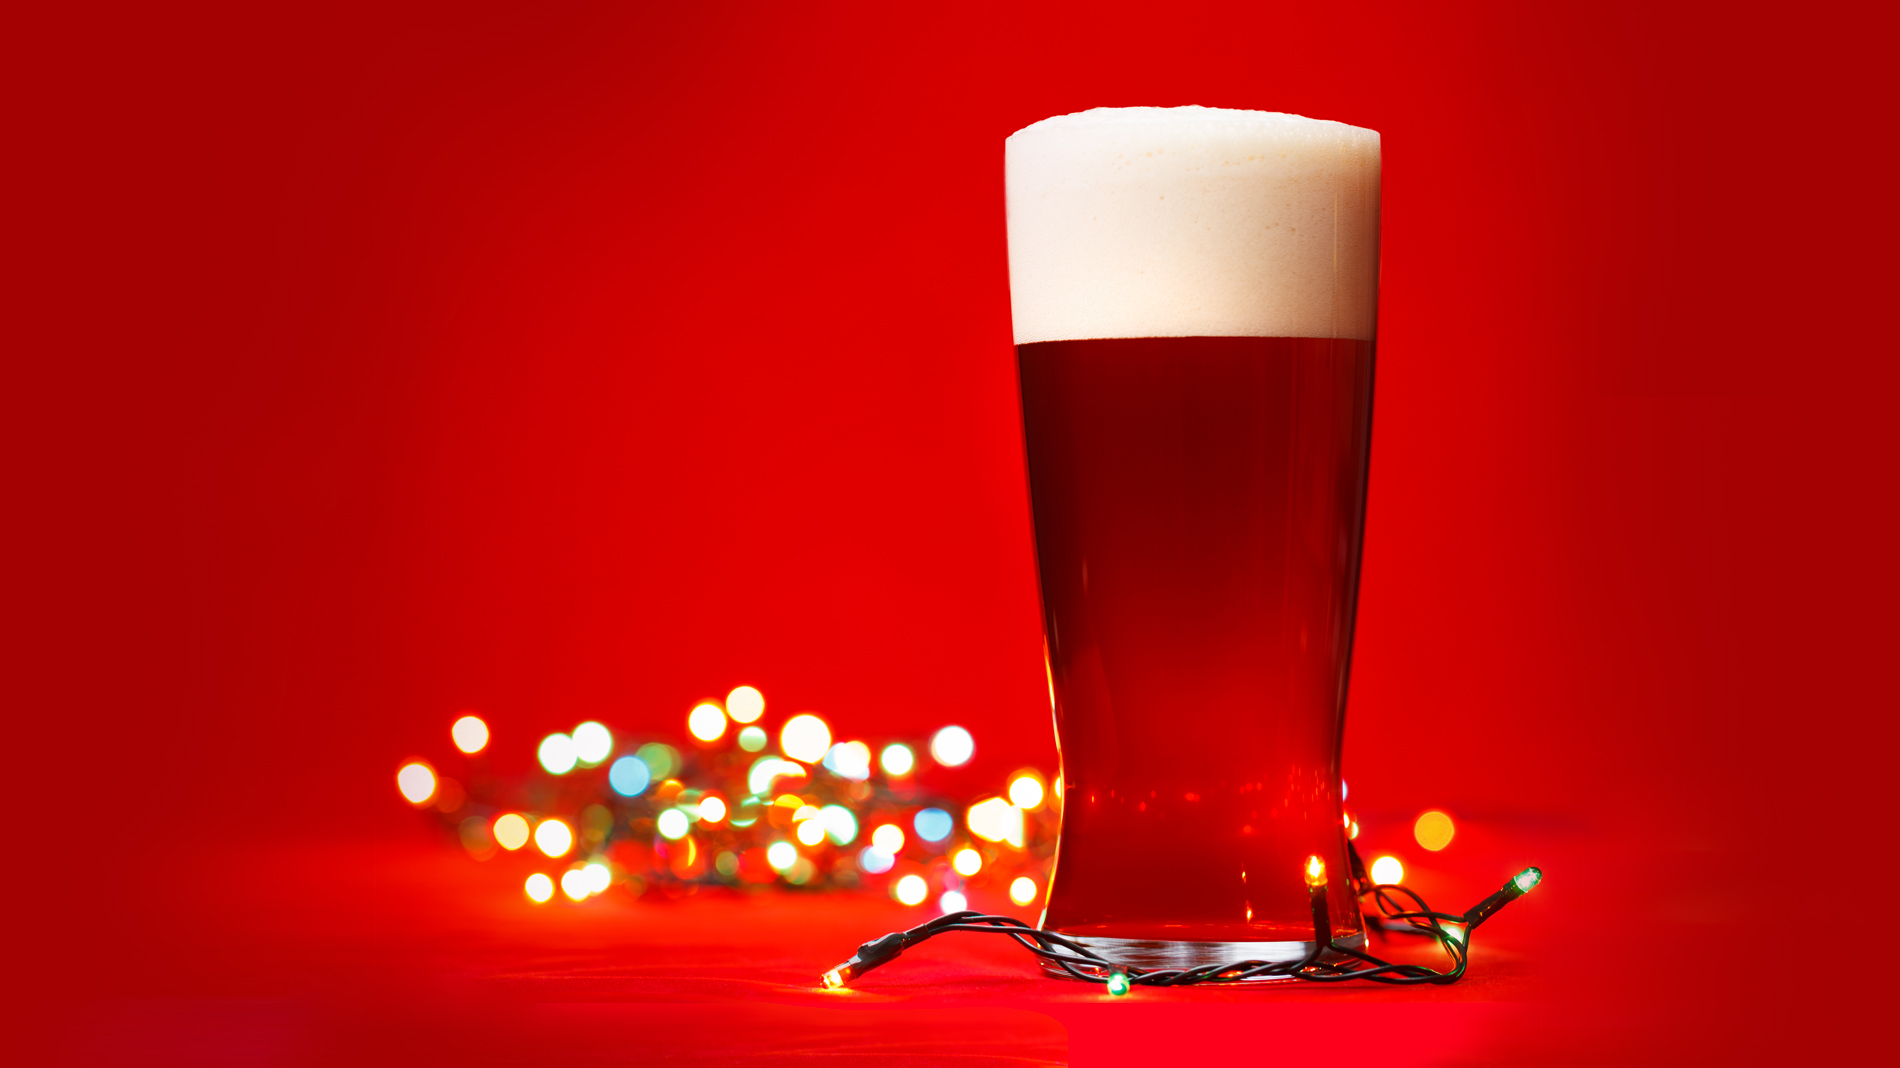 a glass of beer with christmas lights in the background